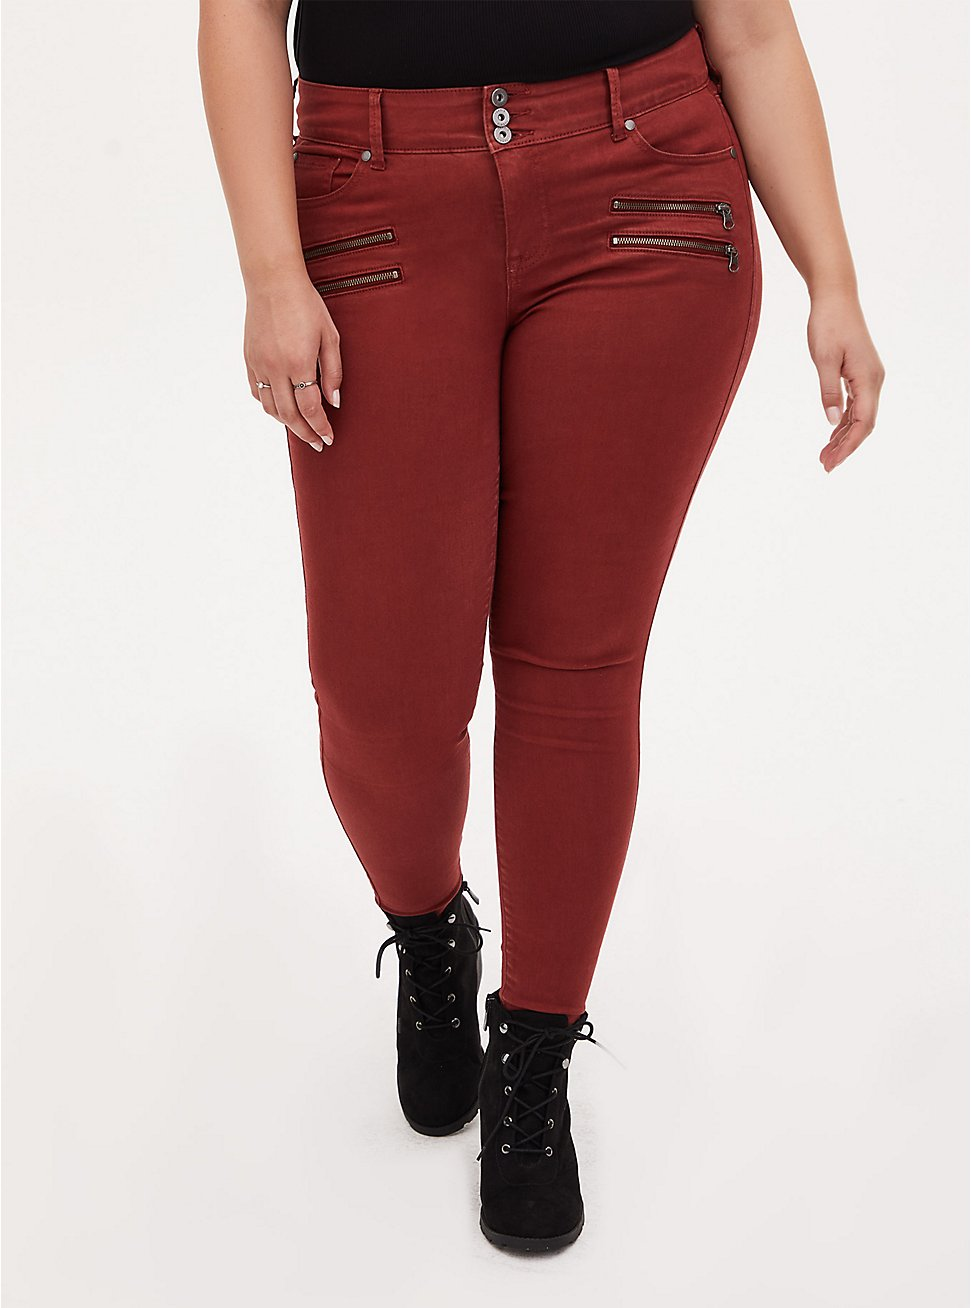 Multi Zip Jegging - Super Soft Brick Red, MADDER BROWN, hi-res